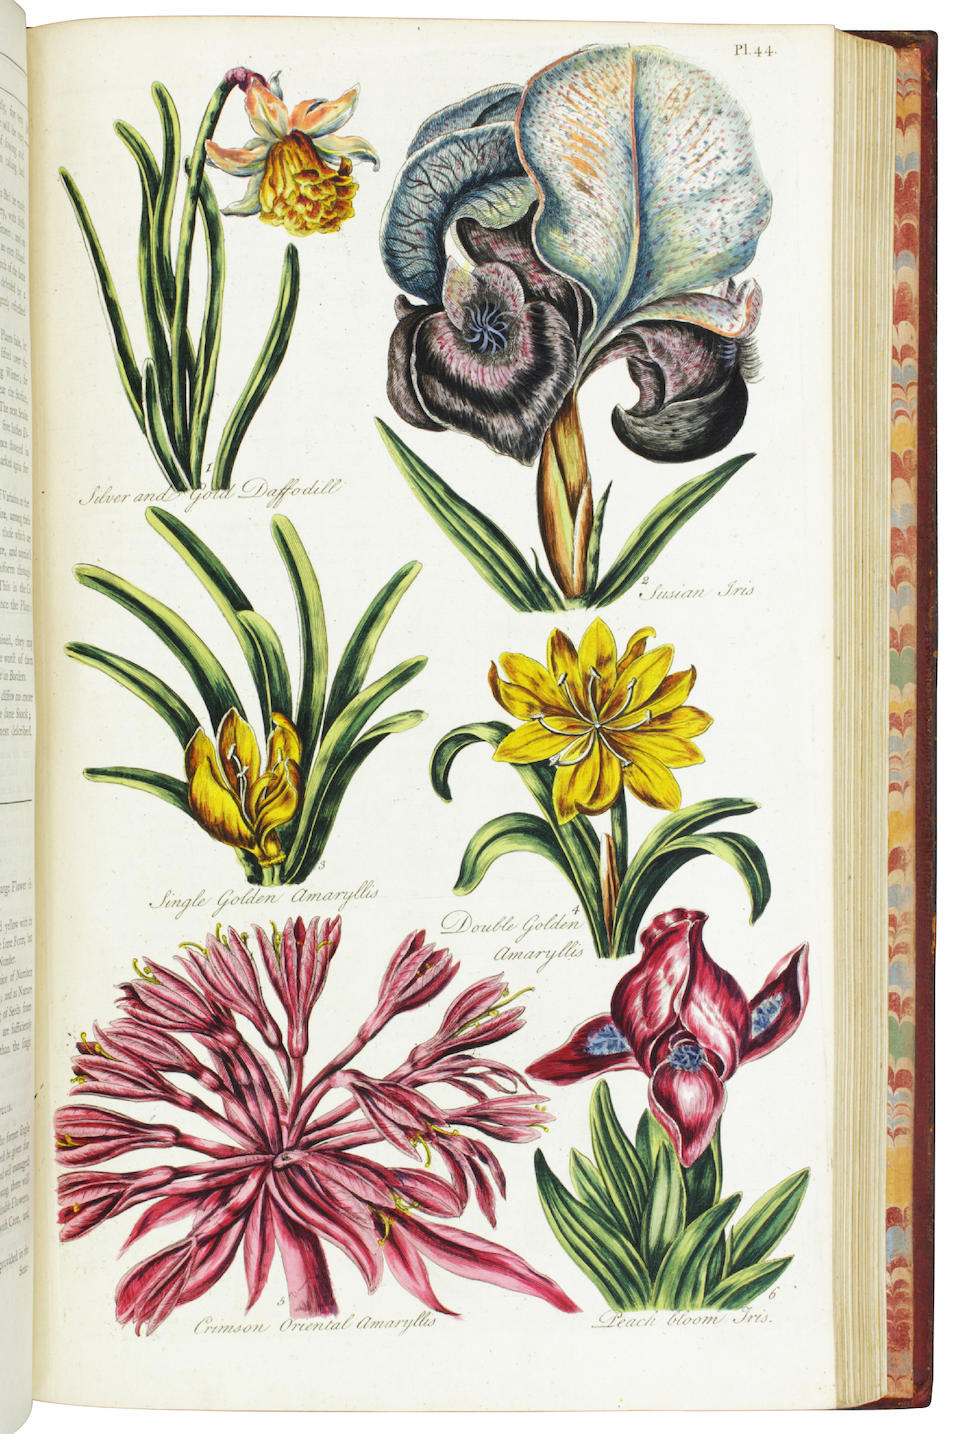 HILL, JOHN. 1716-1775. Compleat Body of Gardening. London: printed for T. Osborne; T. Trye; S. Crowder and Co.; and H. Woodgate, 1757.